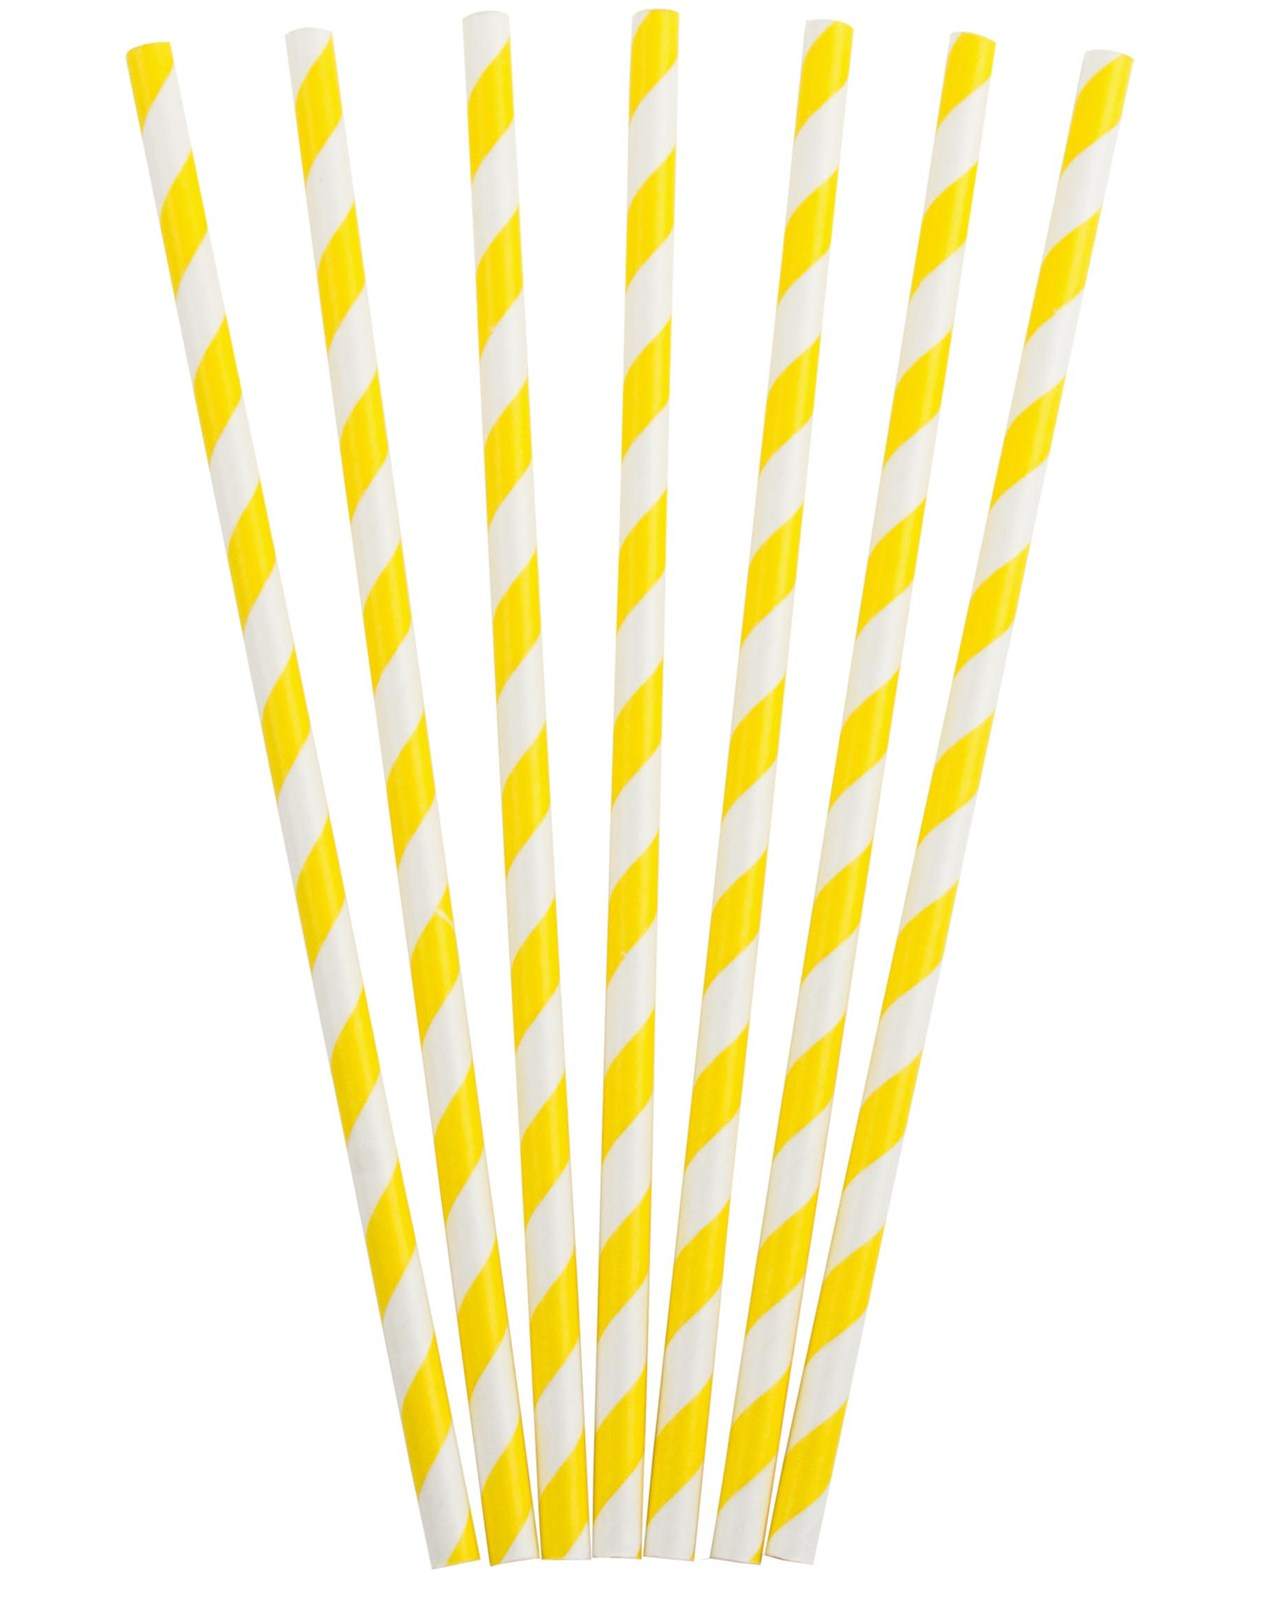 yellow paper straws Party paper straws made in the usa they will add cuteness to your diy party get them in grey, yellow, pink, blue, aqua, black, red, purple etc - striped straws and.